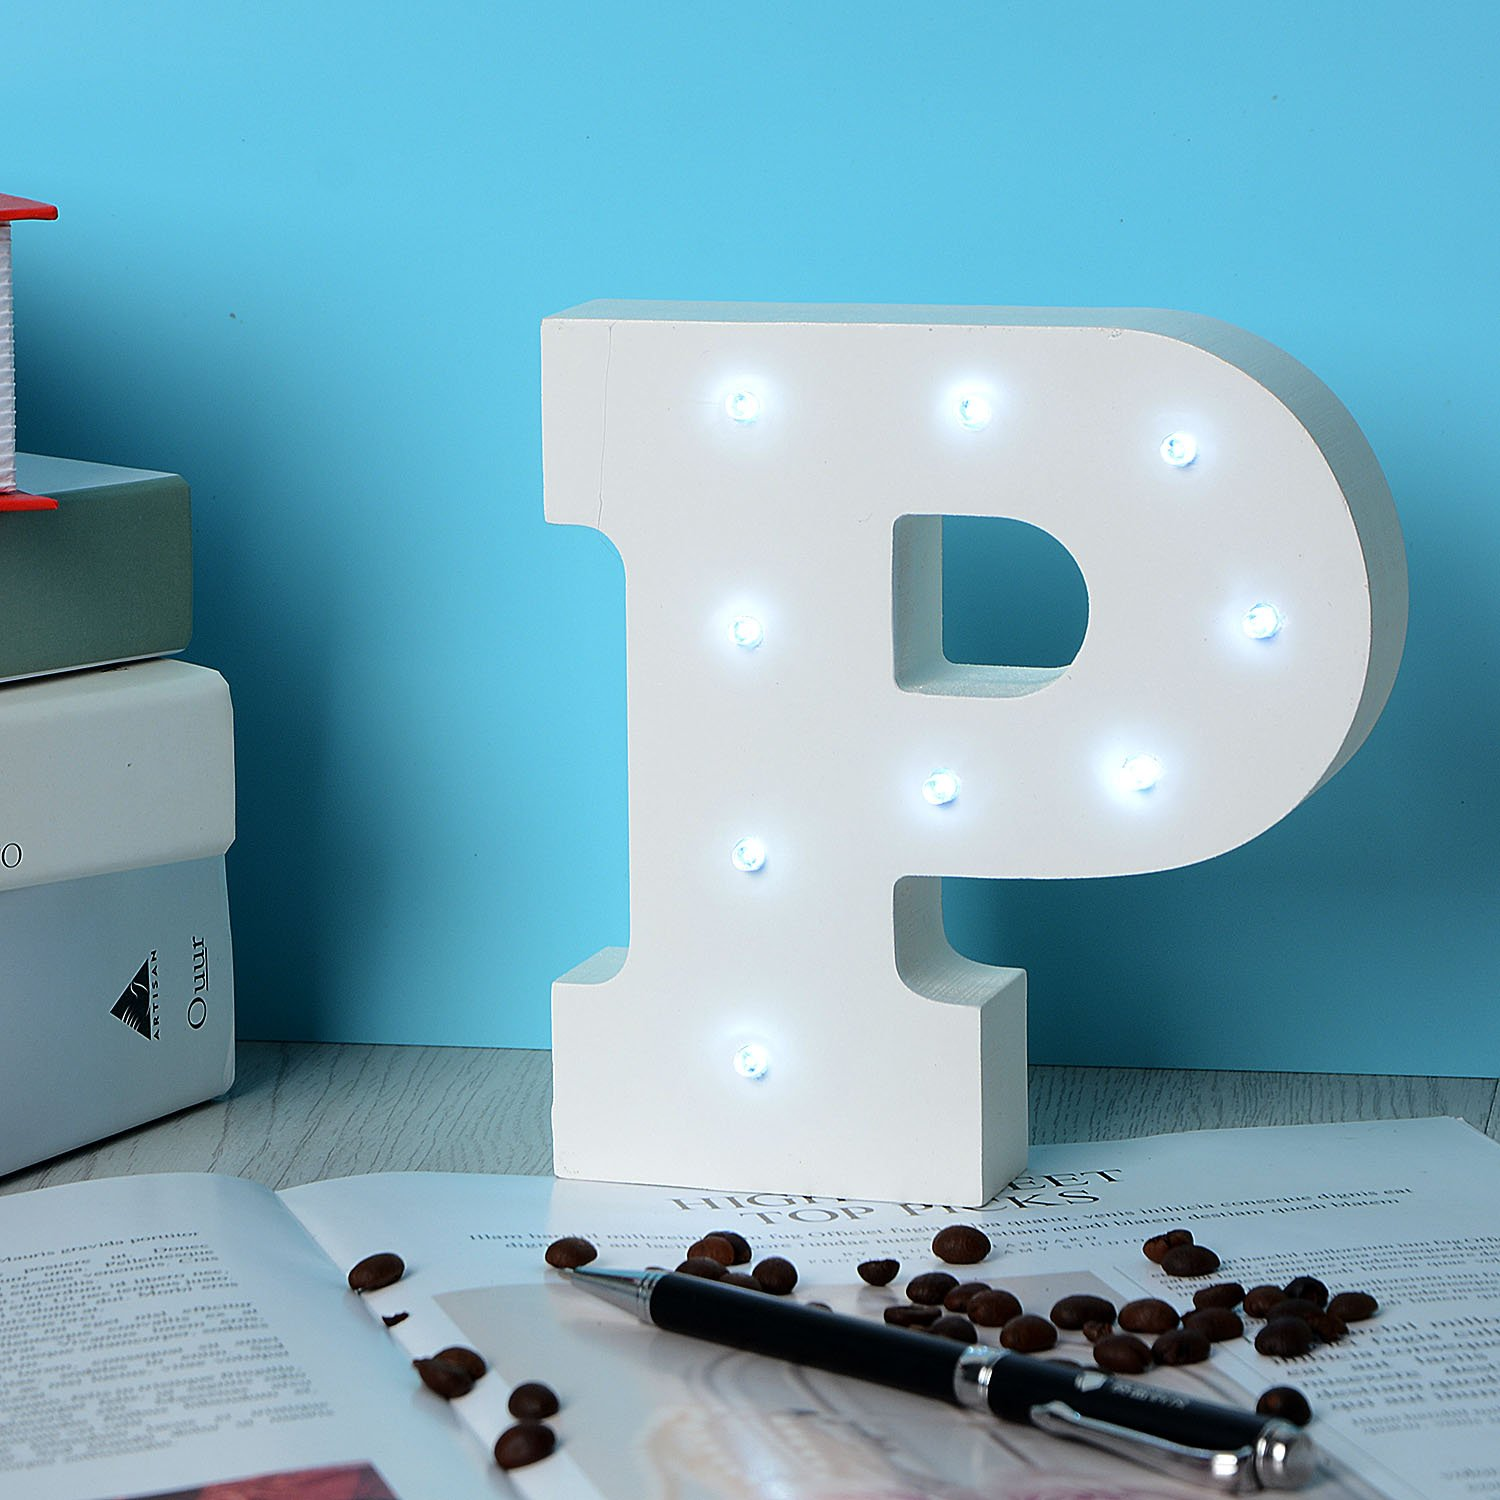 LED Wooden Letters Light Up Marquee Alphabet Night Decorative DIY White Letters Lights Sign with Battery Operated for Festival Party Wedding Holiday Birthday Christmas Valentine Room